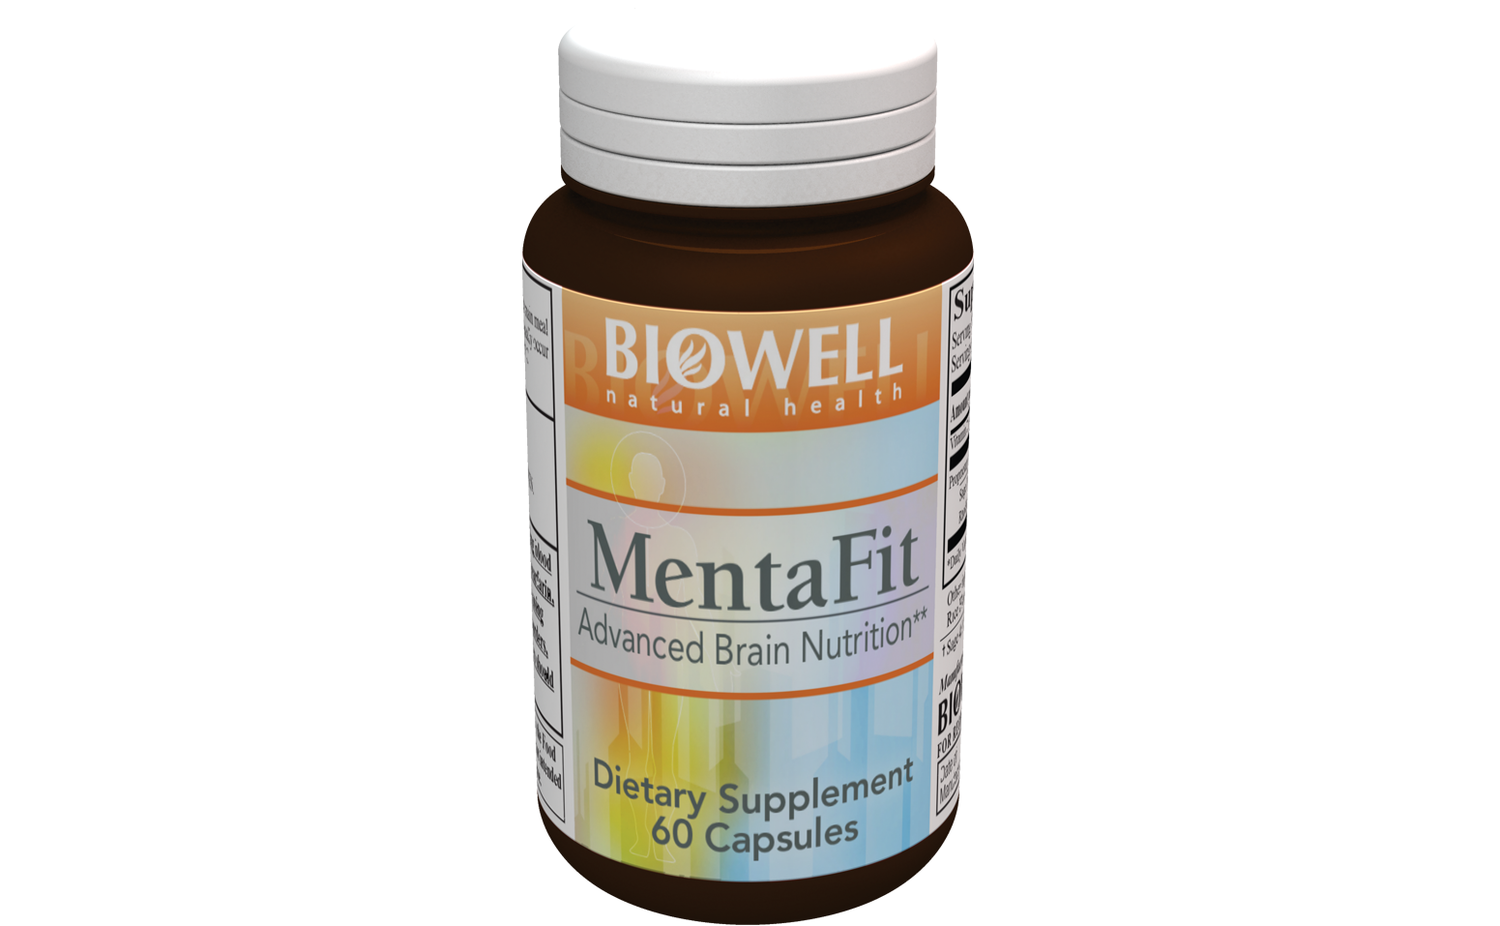 Biowell Label.png